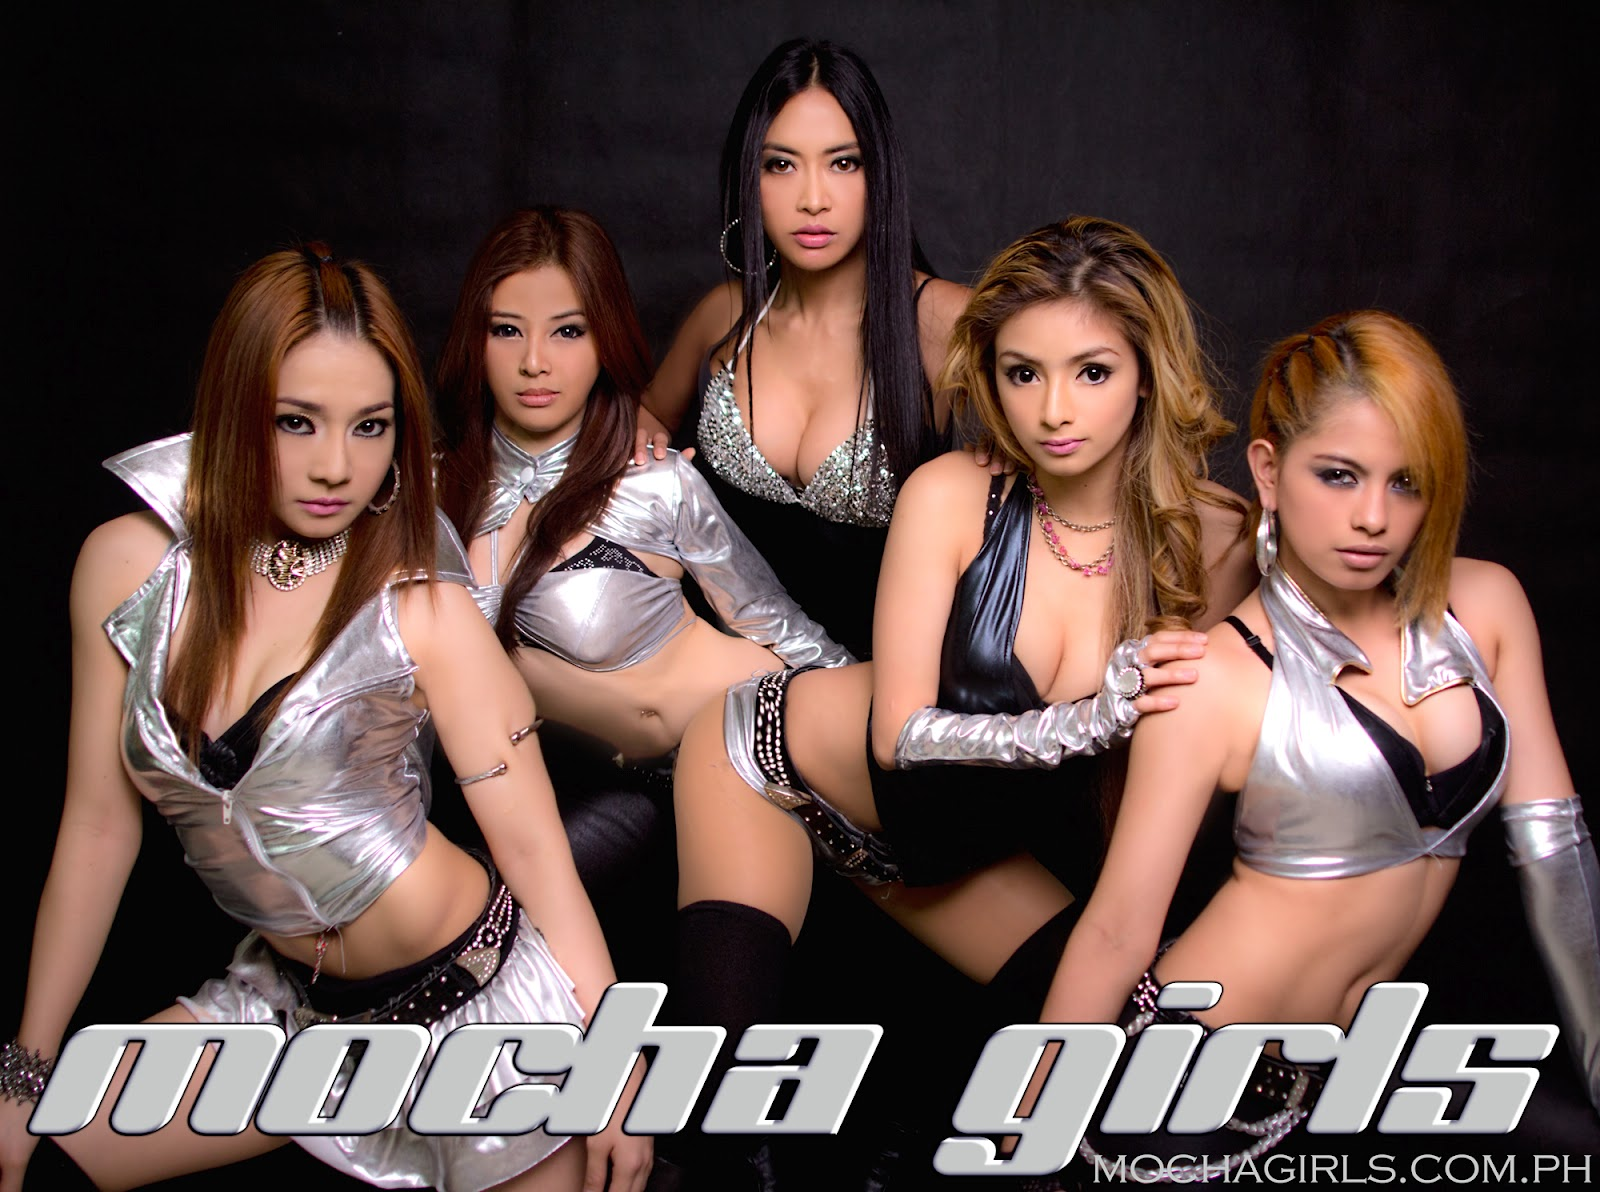 Mocha Girls Mae http://michaelandrewcarbon.blogspot.com/2012/05/mocha-girls-live-in-gensan-on-may-11.html